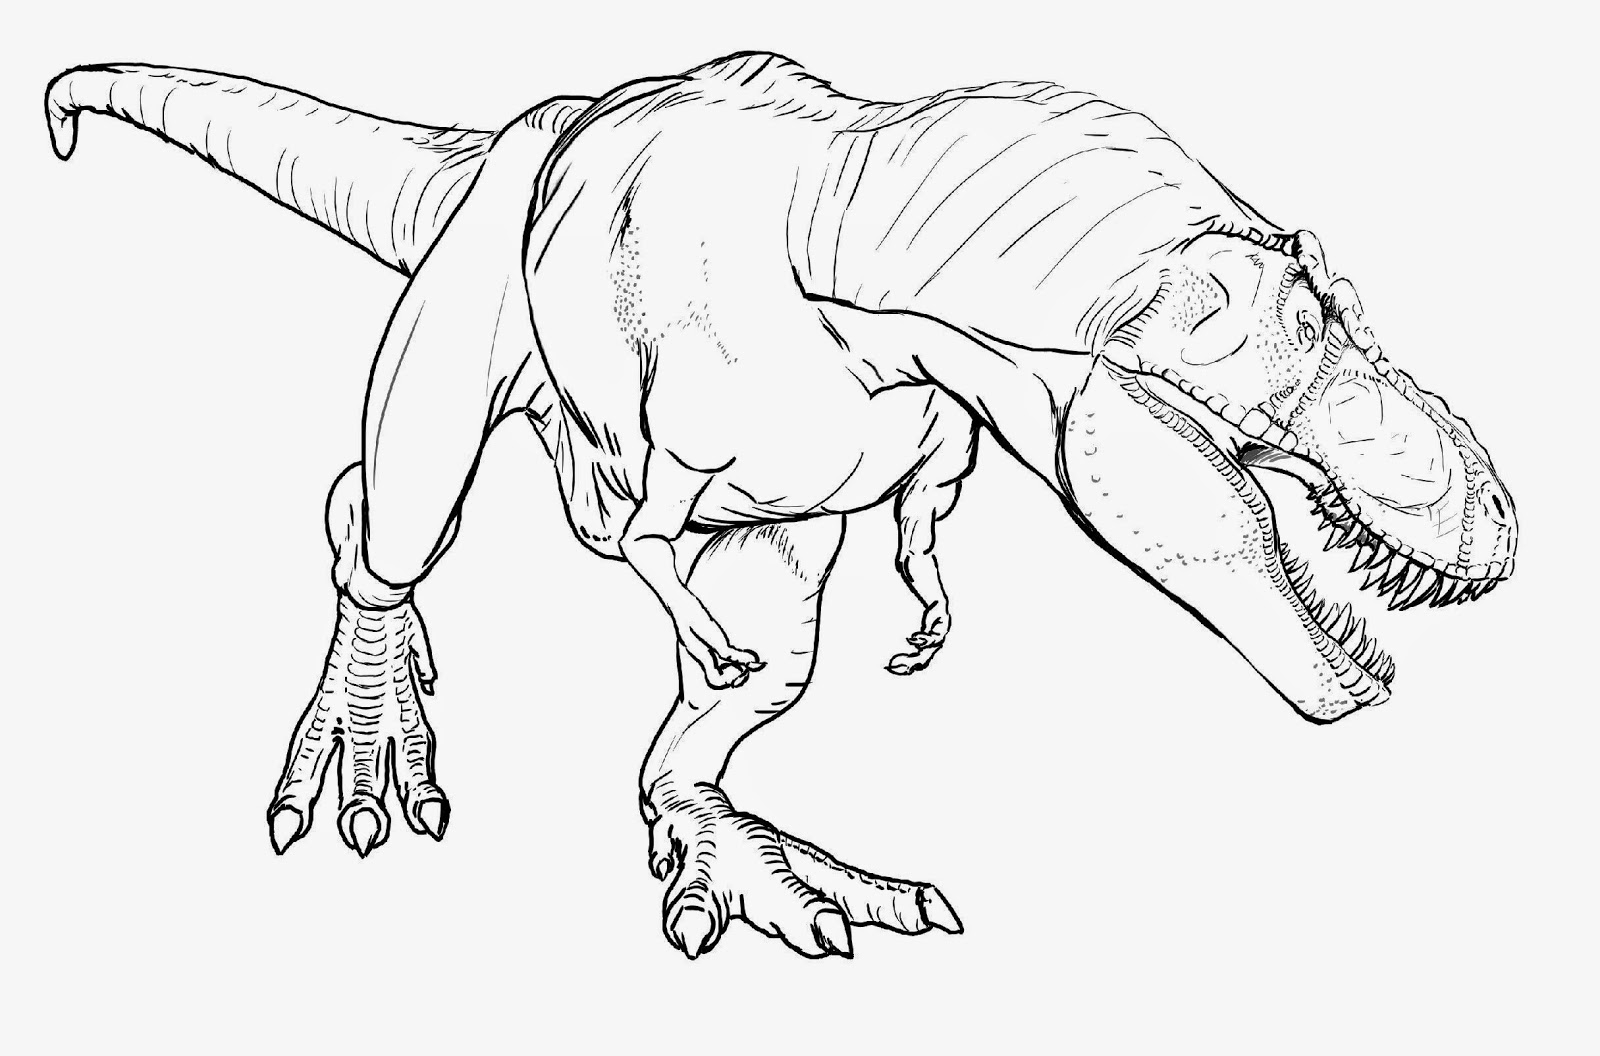 Free T Rex Dinosaurs Coloring Pages 6248 T Rex Dinosaurs Coloring to Print Of Dinosaur Clipart Coloring Page Triceratop Pencil and In Color Gallery